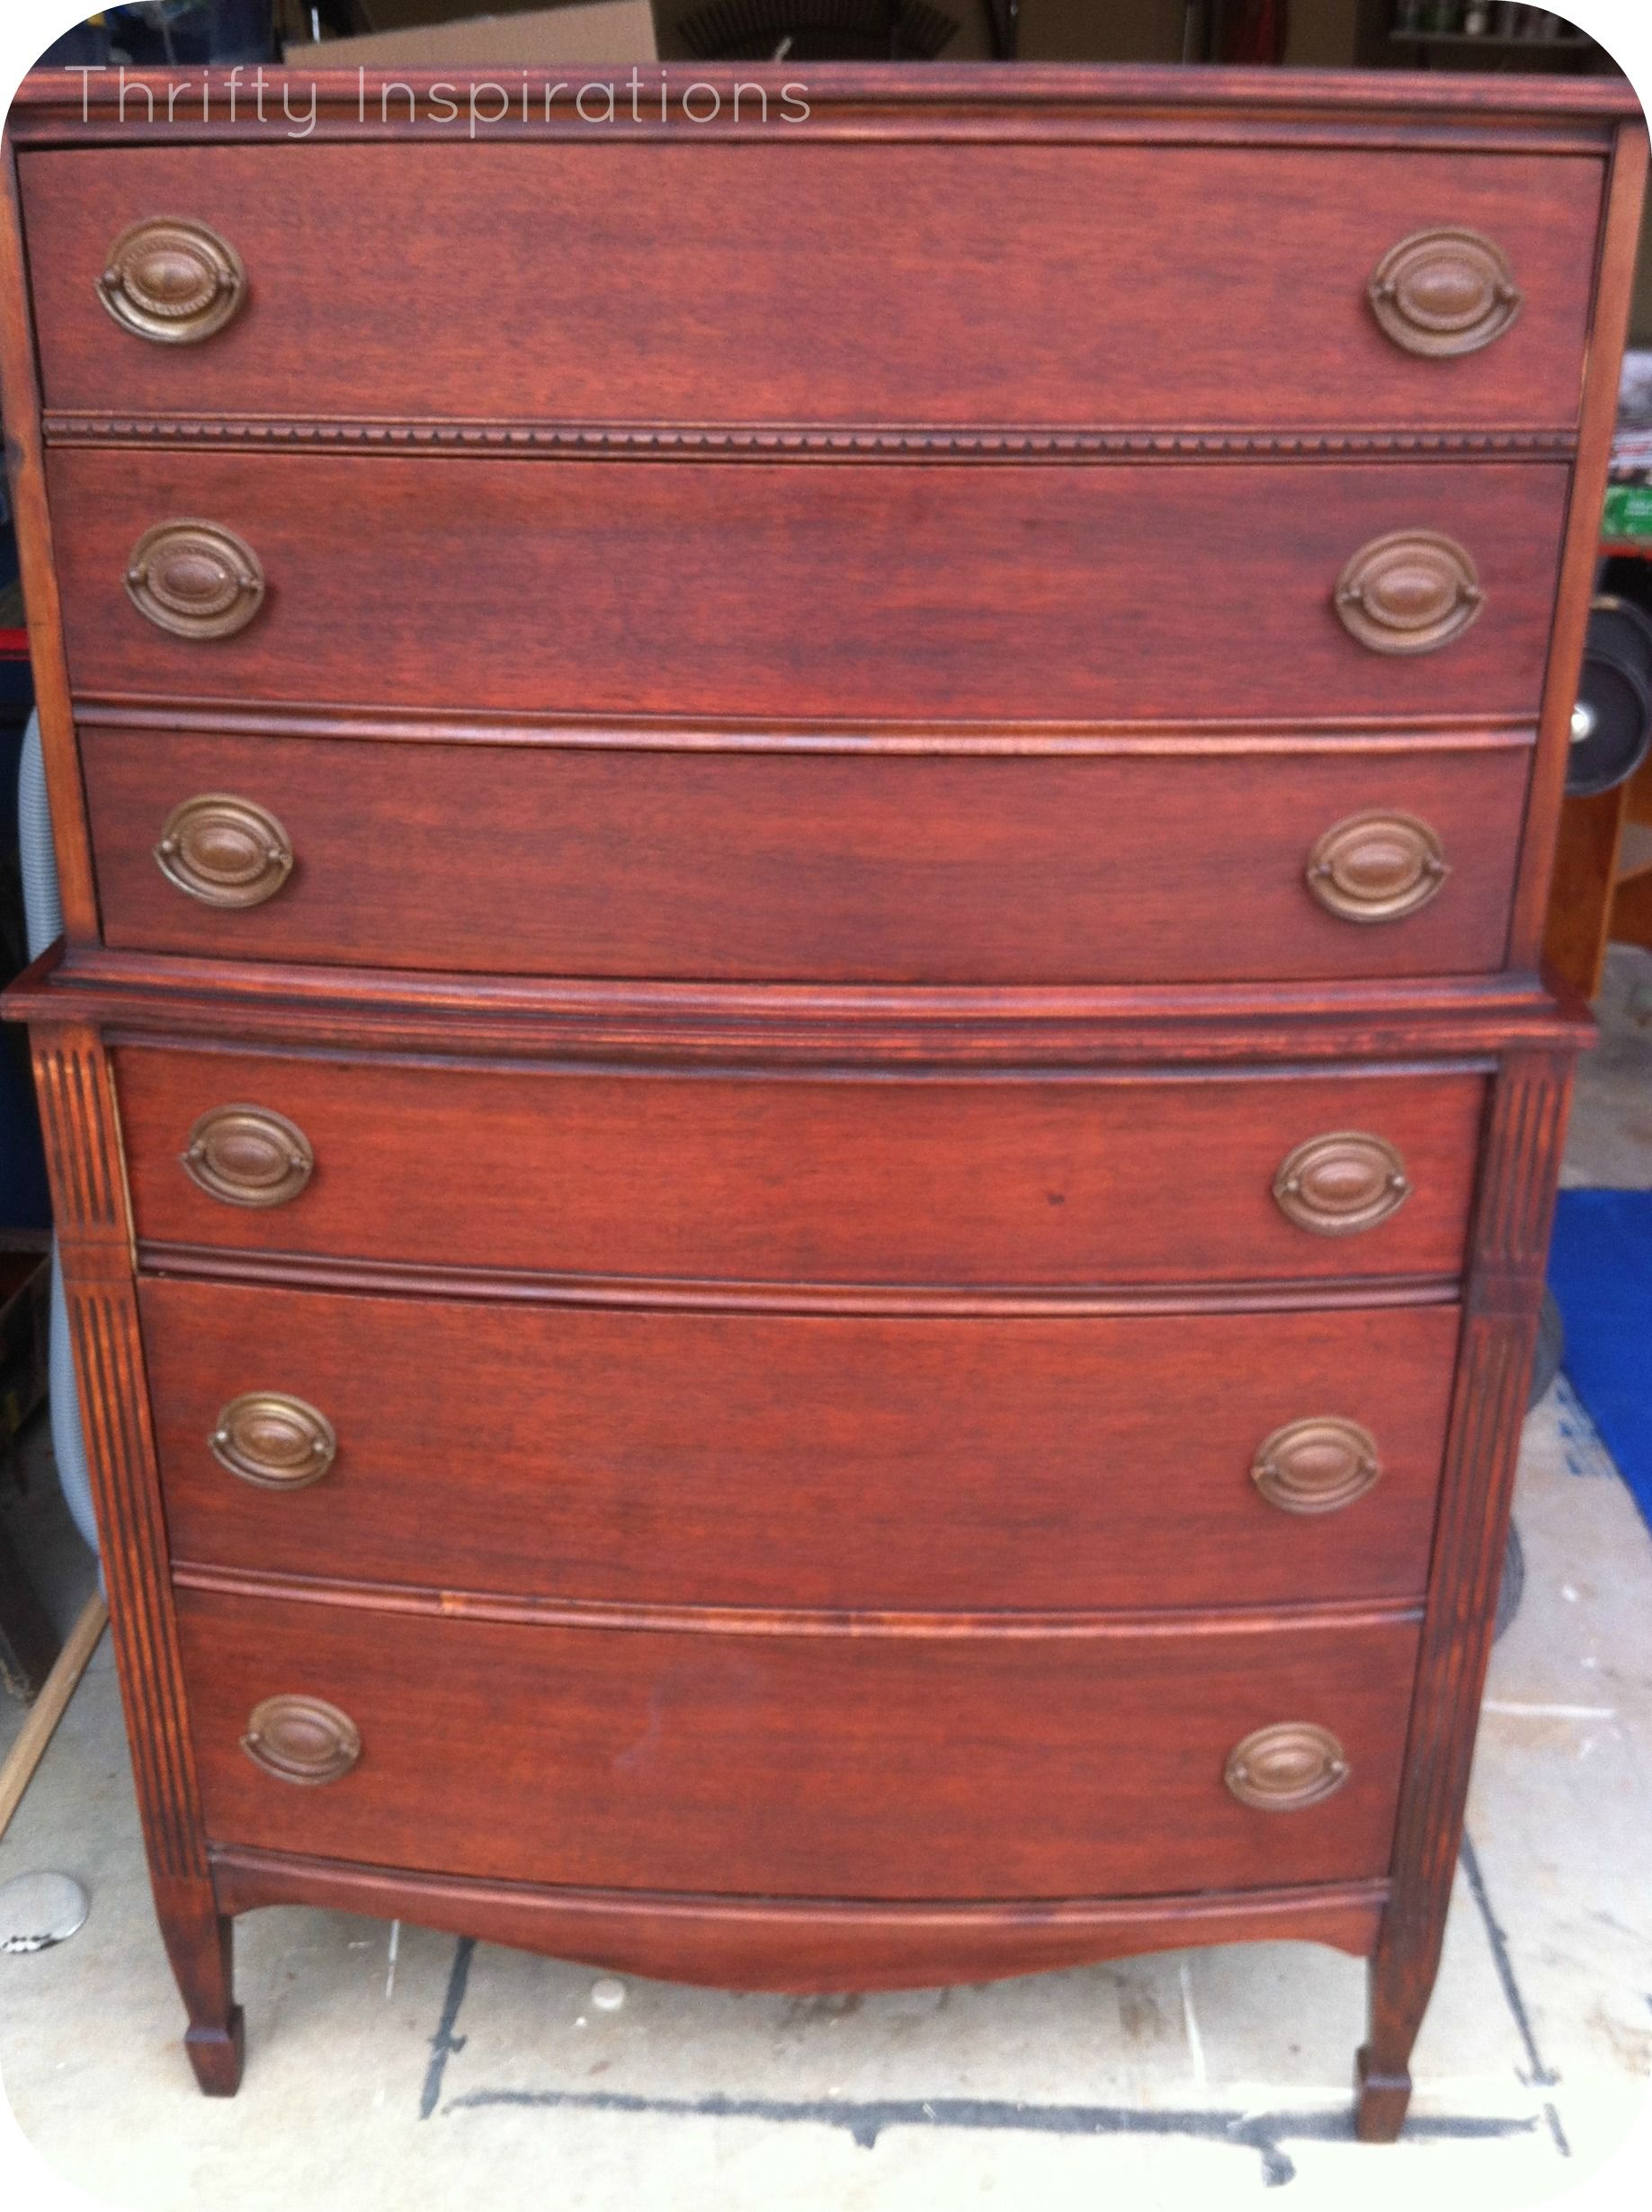 Dixie Furniture Co Chest On Chest 1940s Thrifty Inspirations Blog